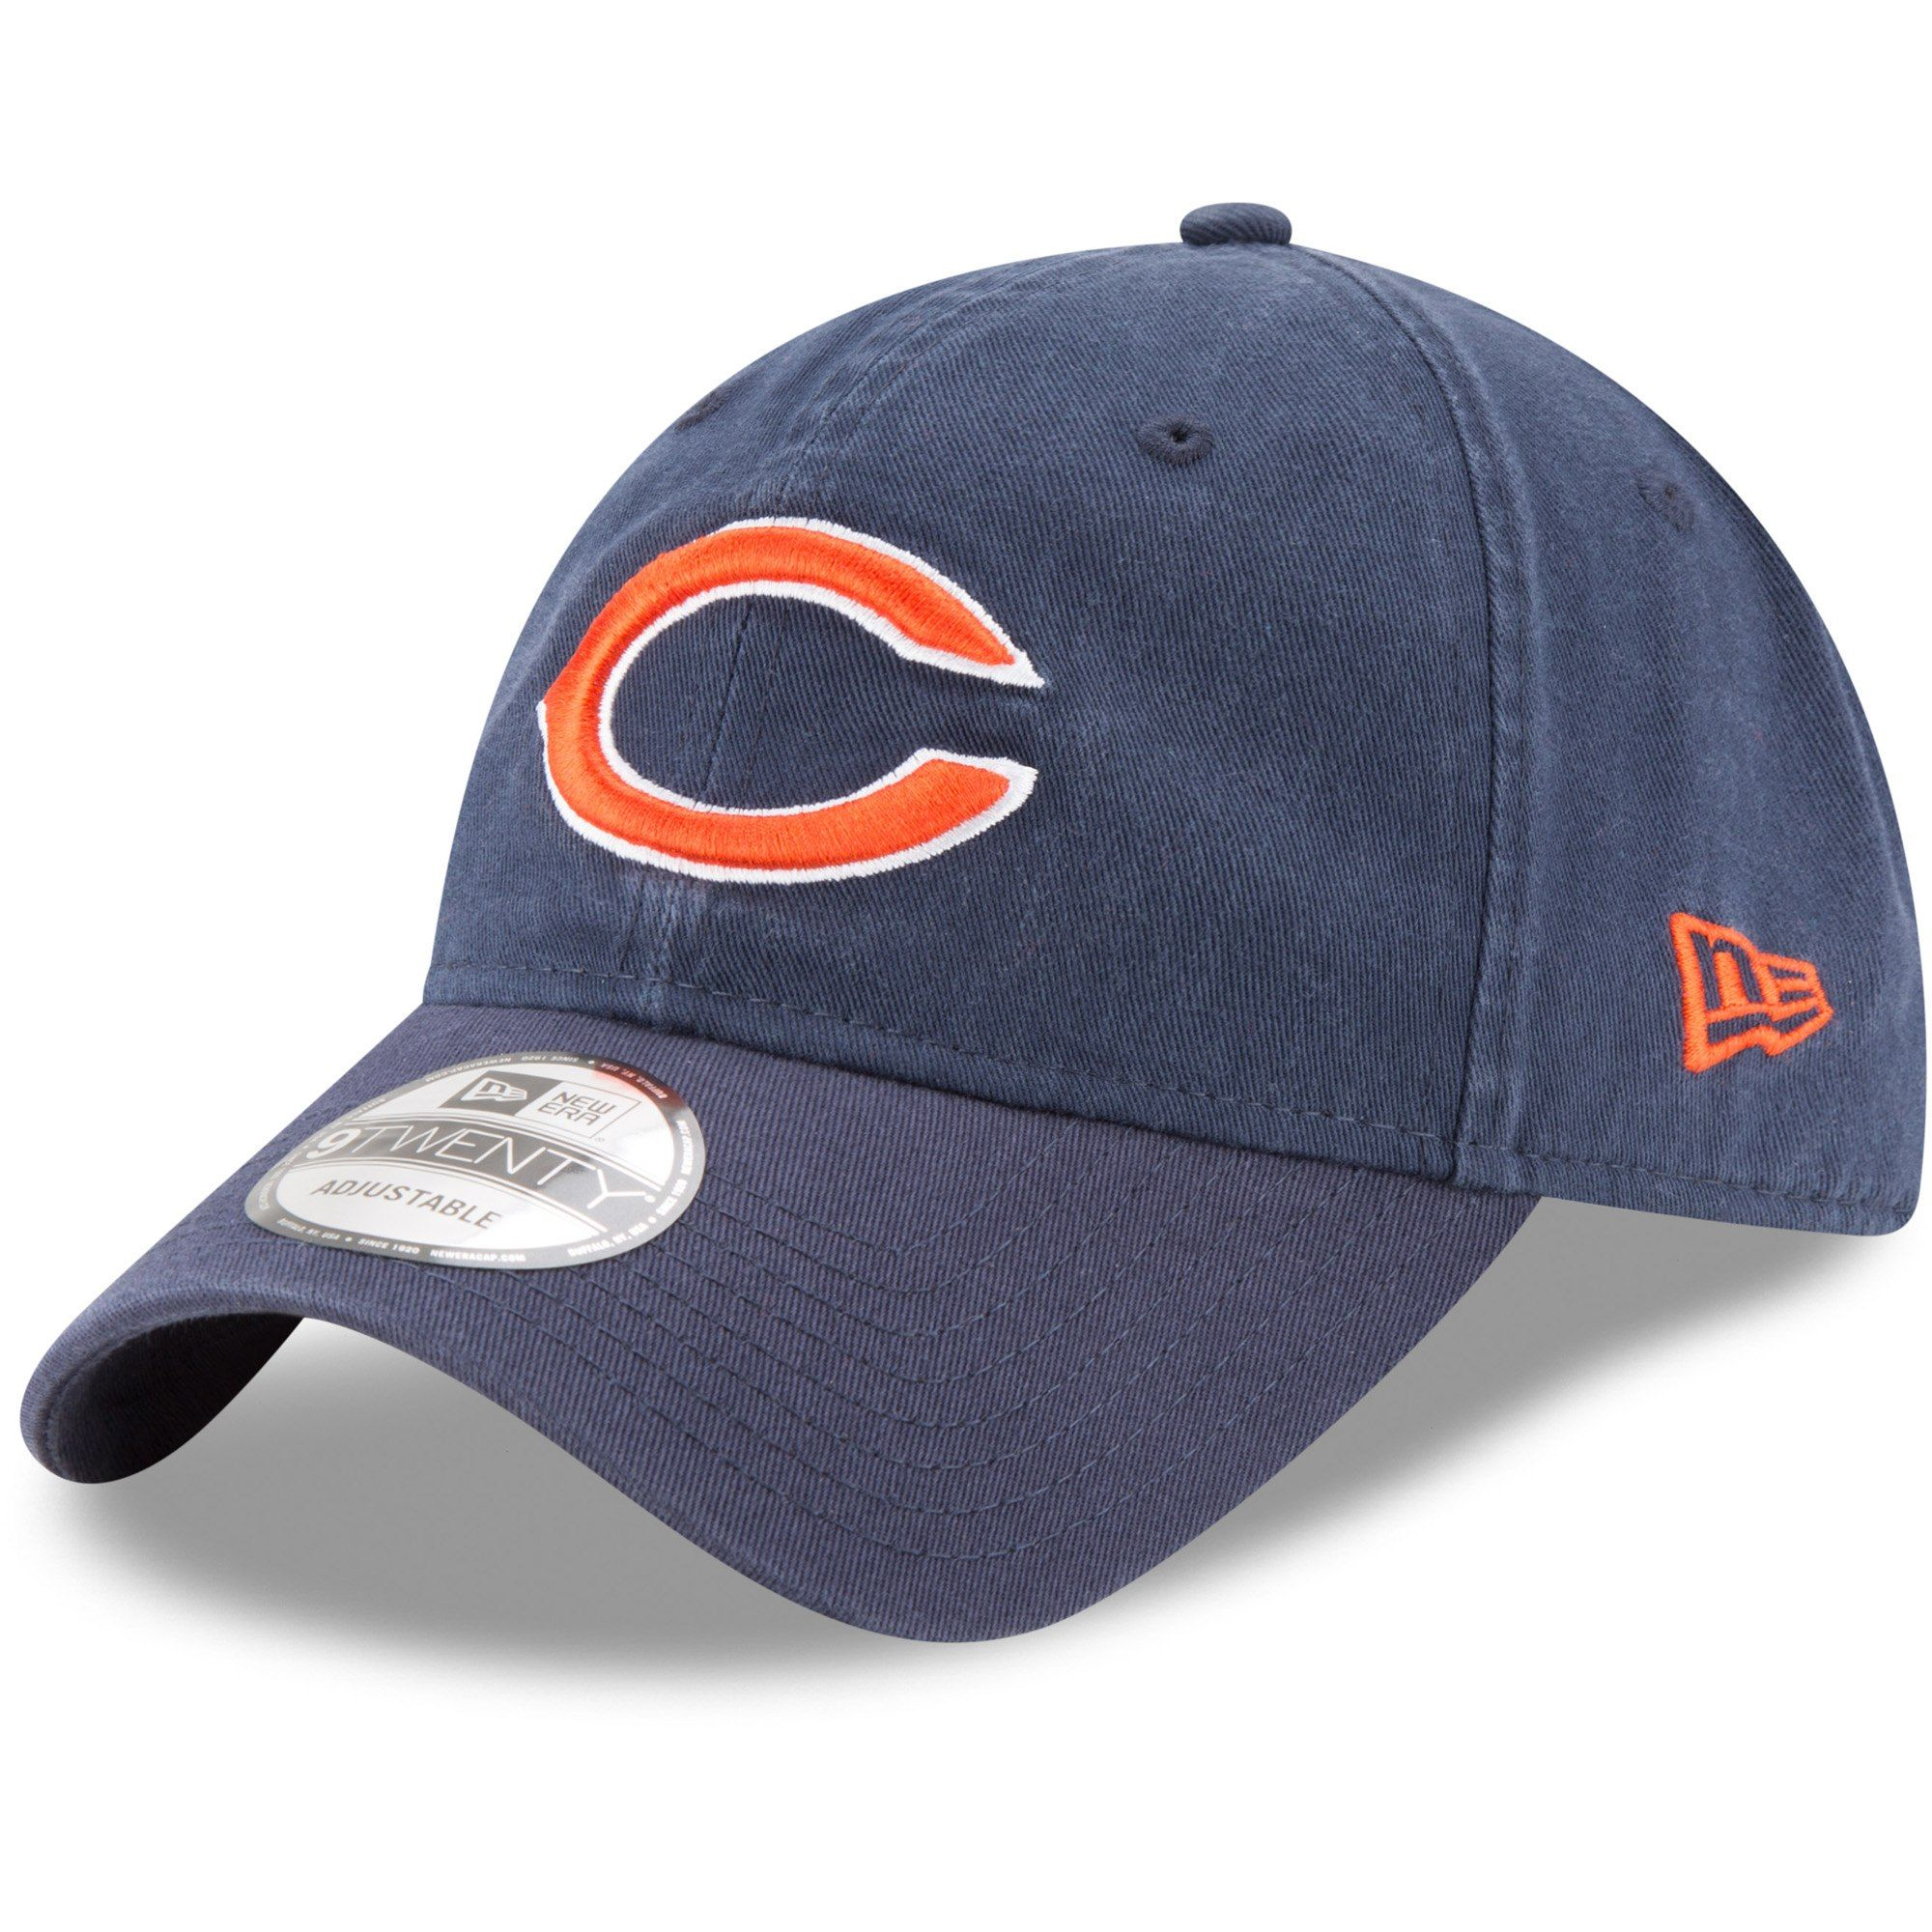 c5e802861d8282 Youth Chicago Bears New Era Navy Primary Core Classic 9TWENTY Adjustable Hat,  Your Price: $17.99